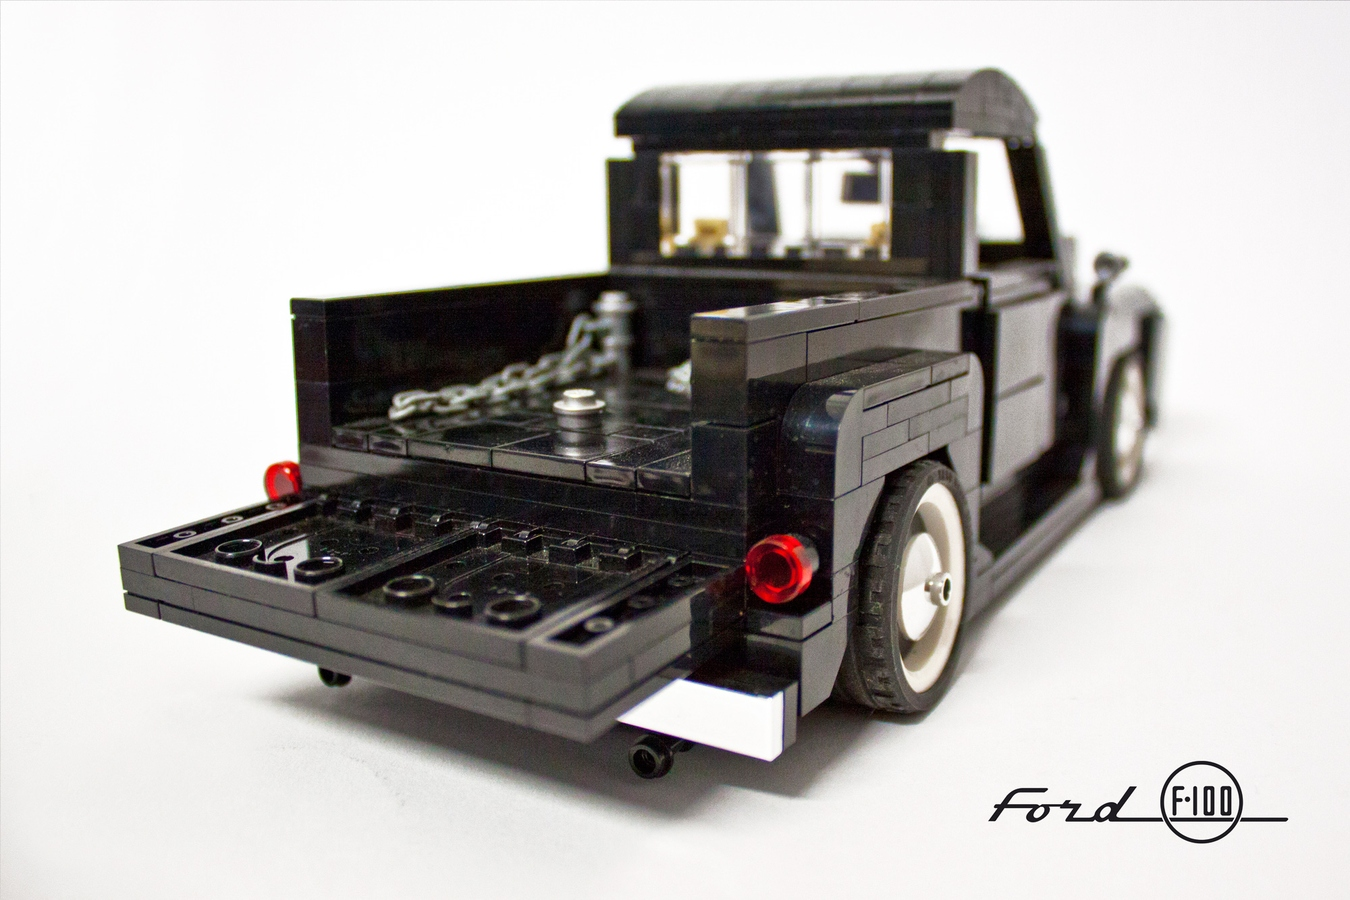 Lego Ideas Product Ford F 100 118 1955 F100 Truck Project 1 11